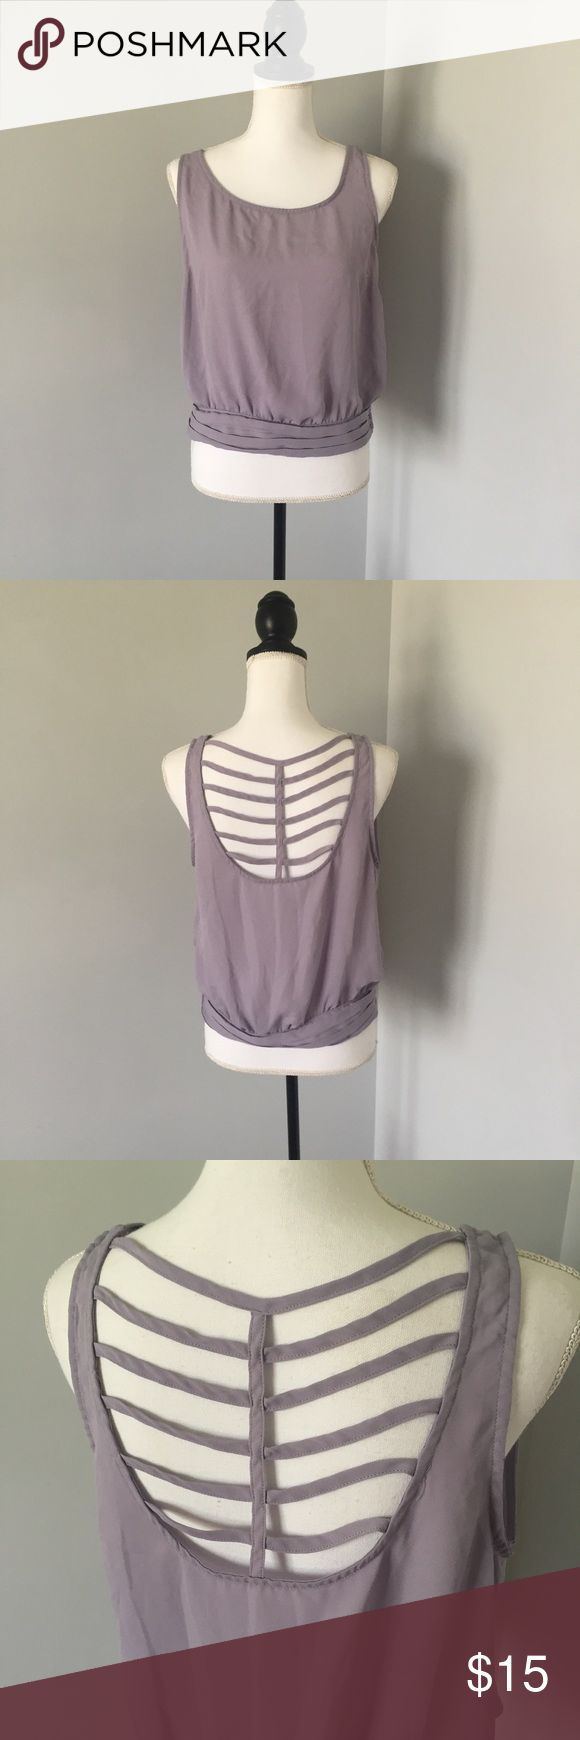 5 for $25 Sale! Liberty Love Purple Strappy Top This top is in excellent condition! Offers welcomed! 57 Liberty Love Tops Blouses